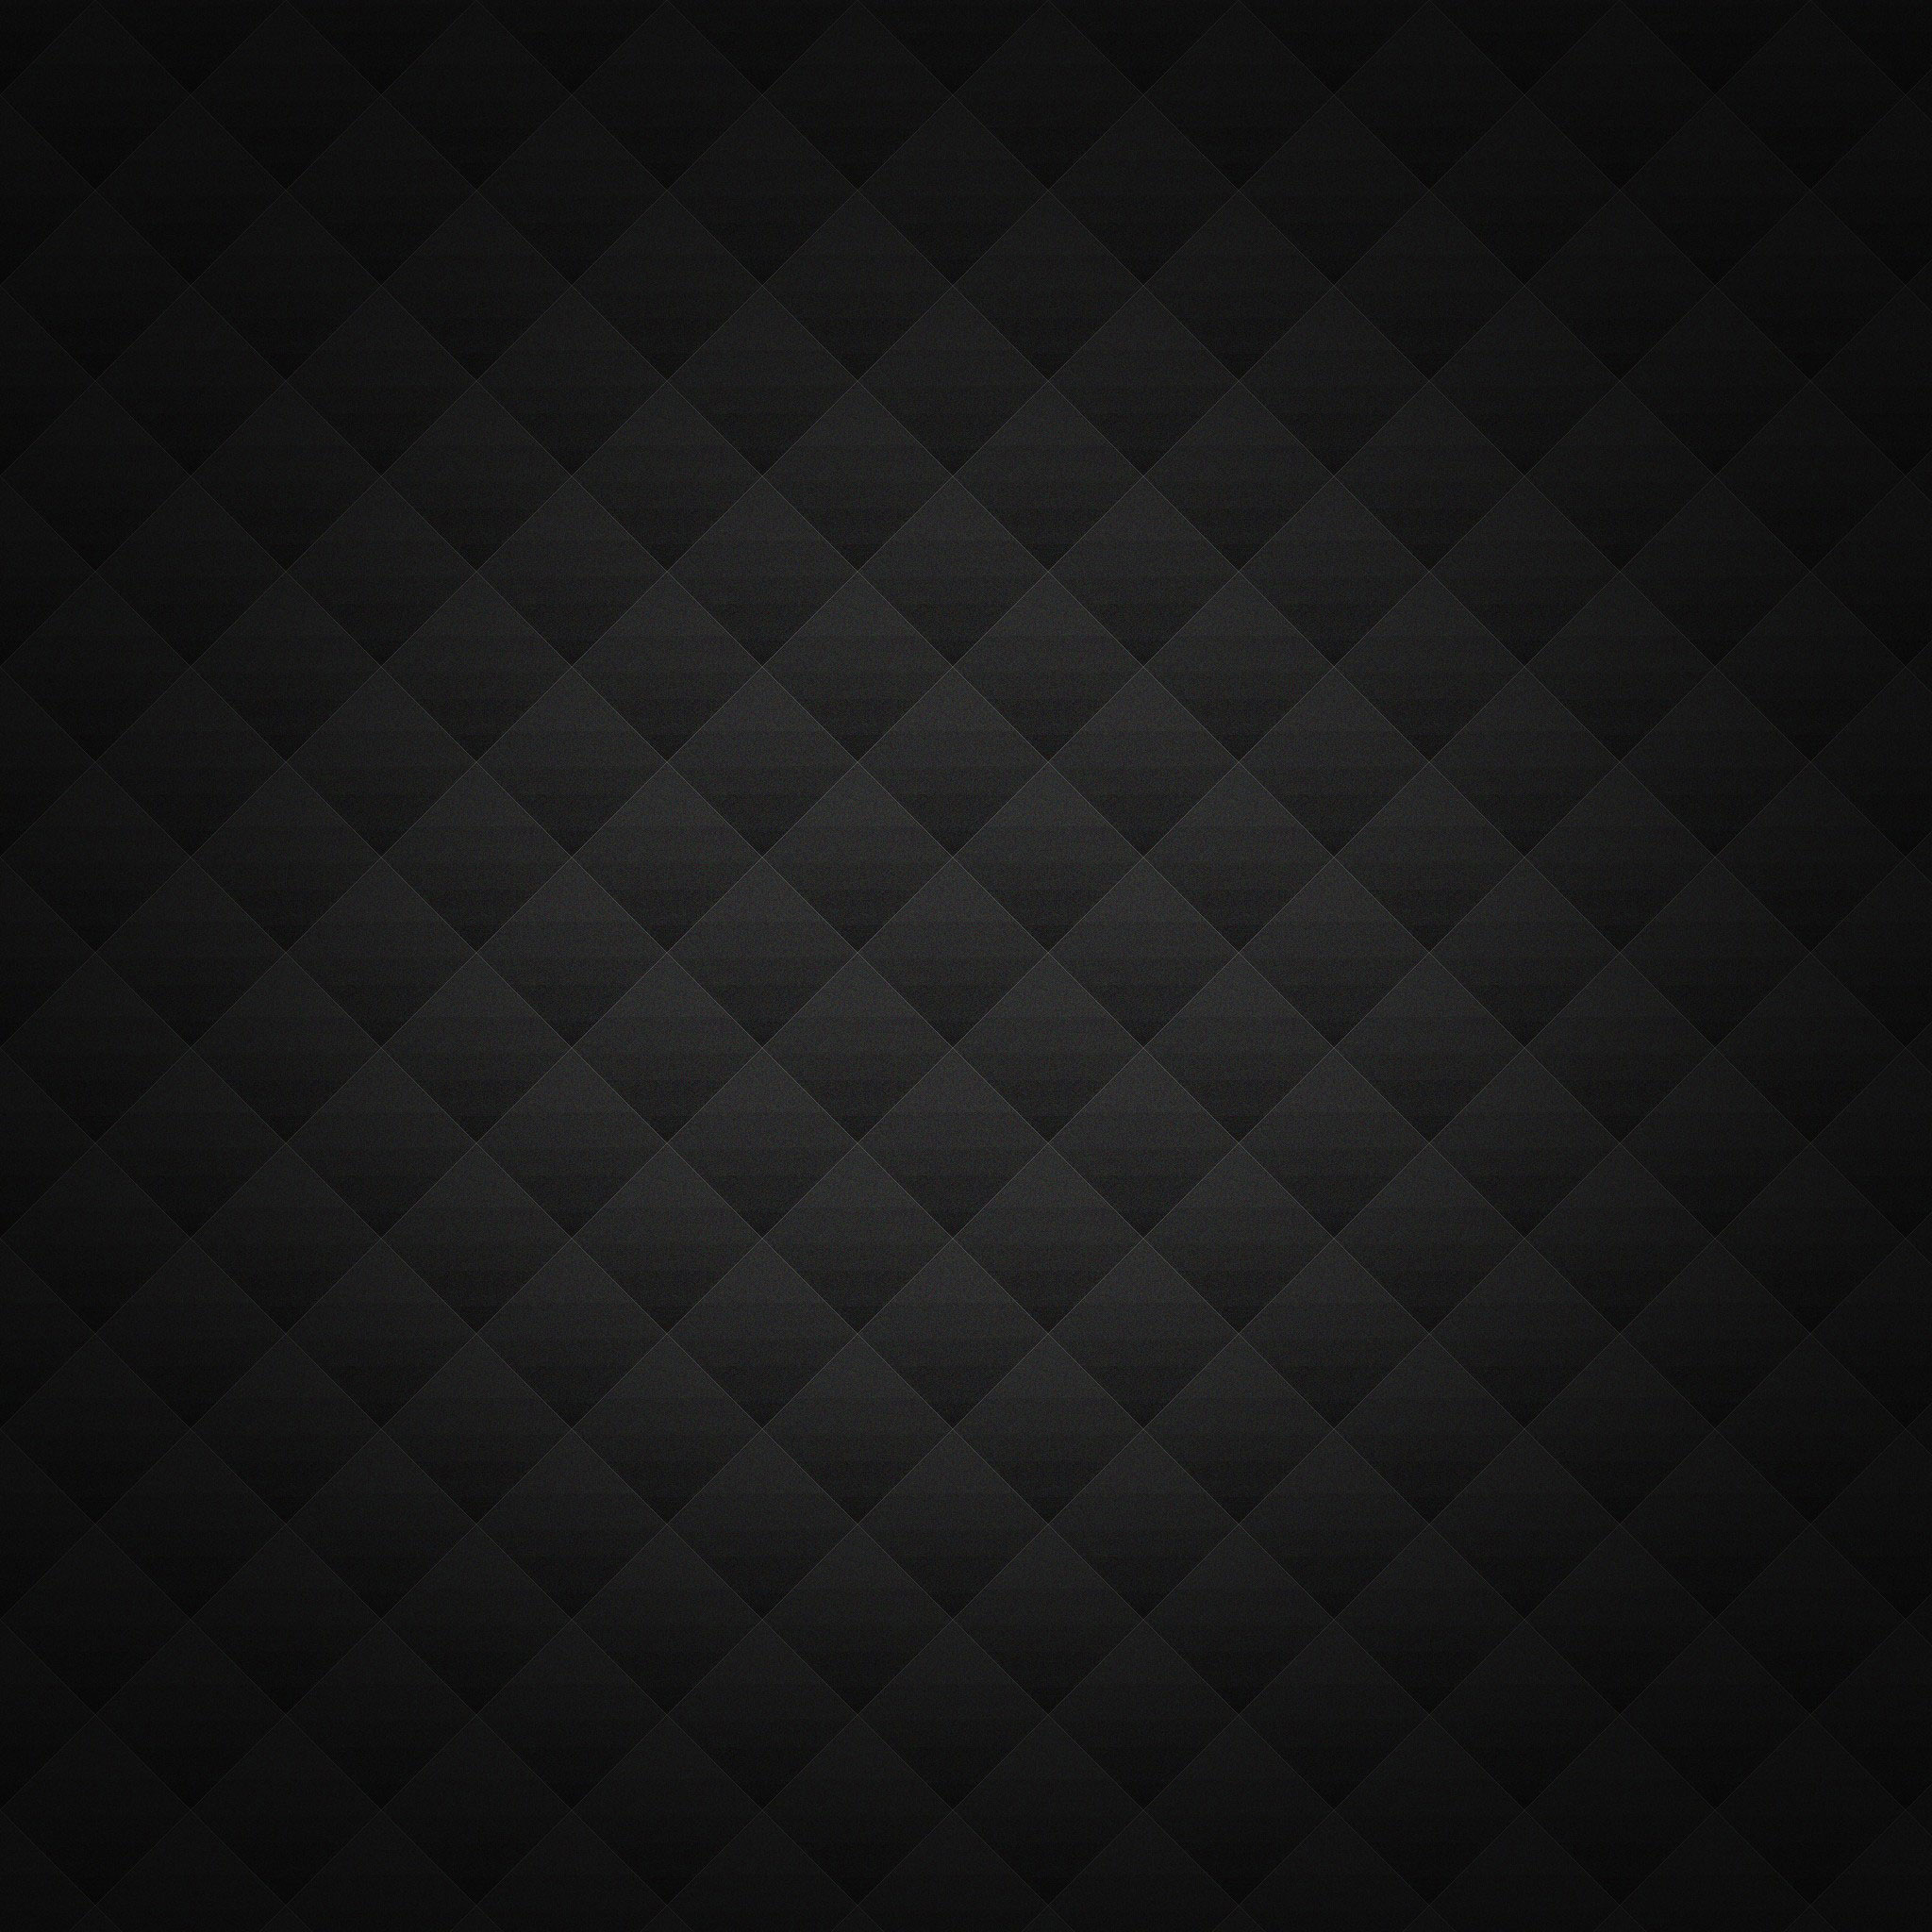 Hd wallpaper ipad - Ipad 3 Wallpaper Pattern